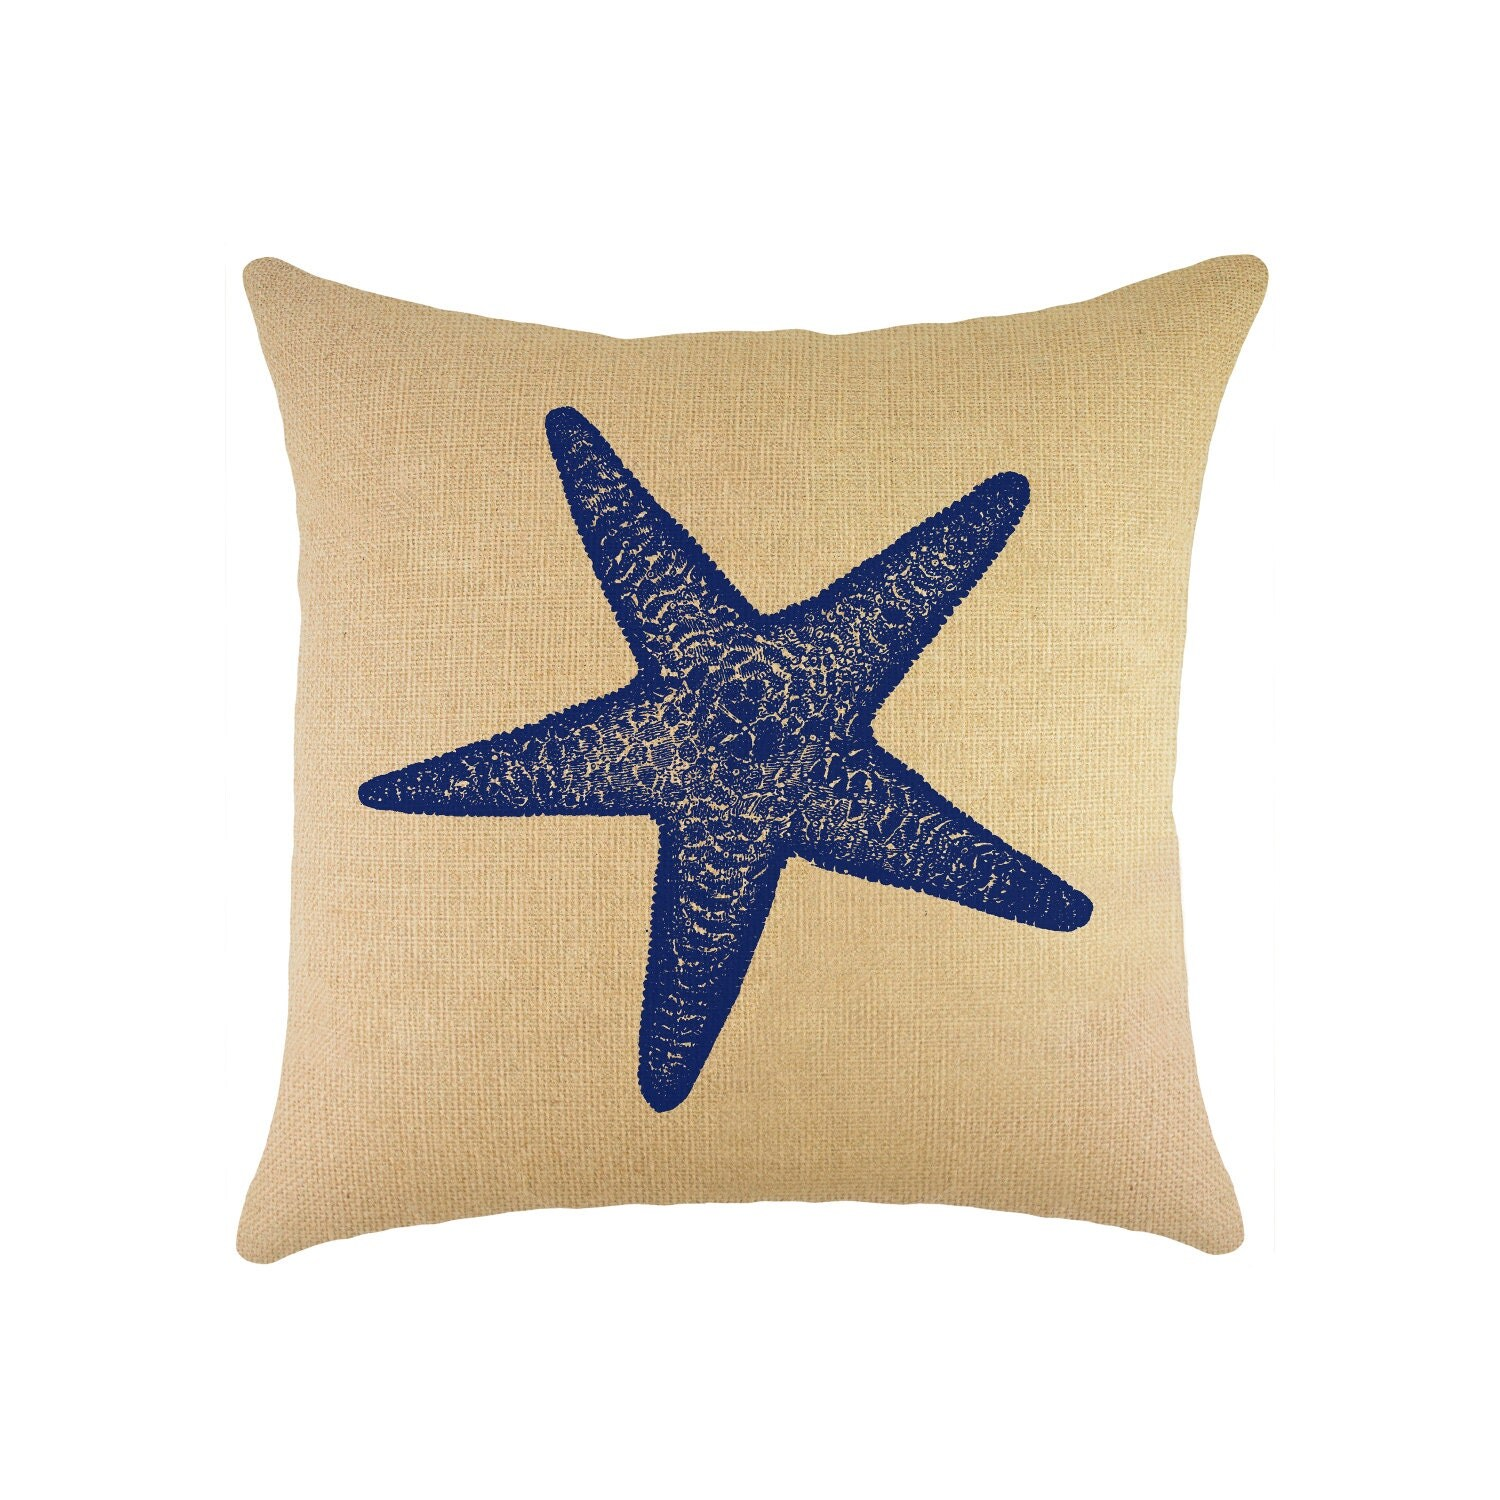 Nautical Coastal Throw Pillows : Starfish Burlap Pillow 16, Nautical Throw Pillow